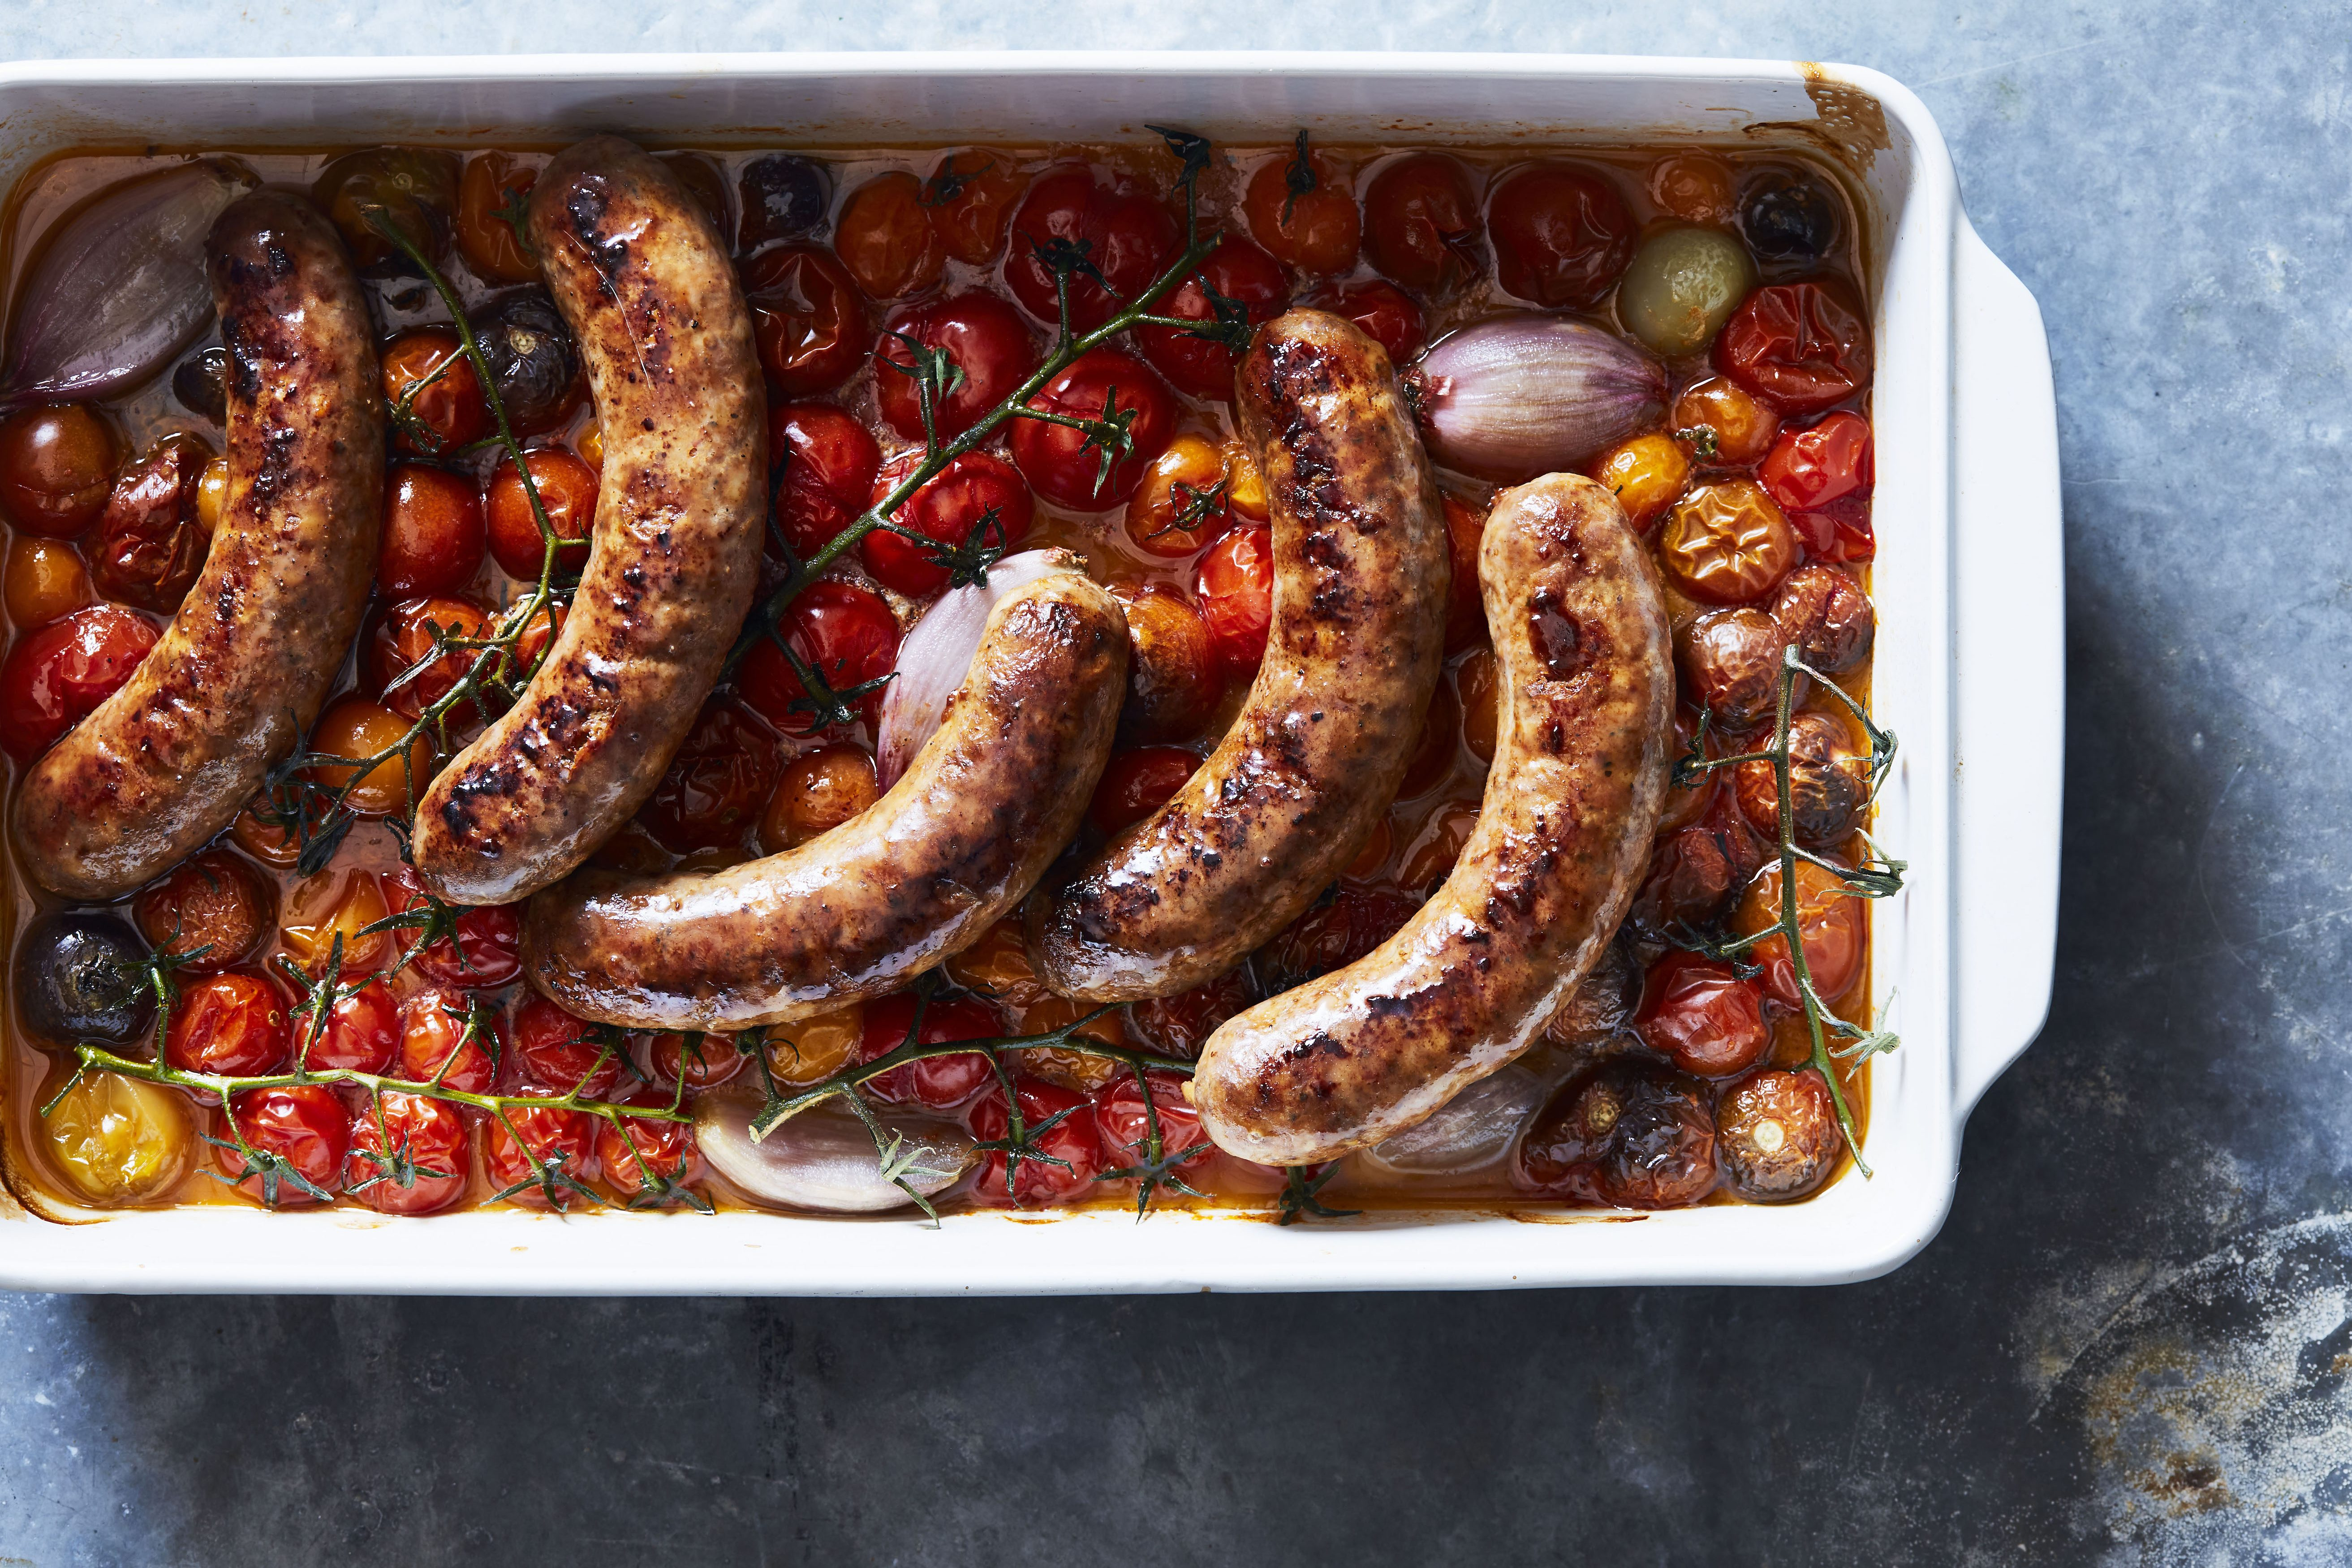 Seared Italian Sausages With Roasted Cherry Tomatoes and Shallots